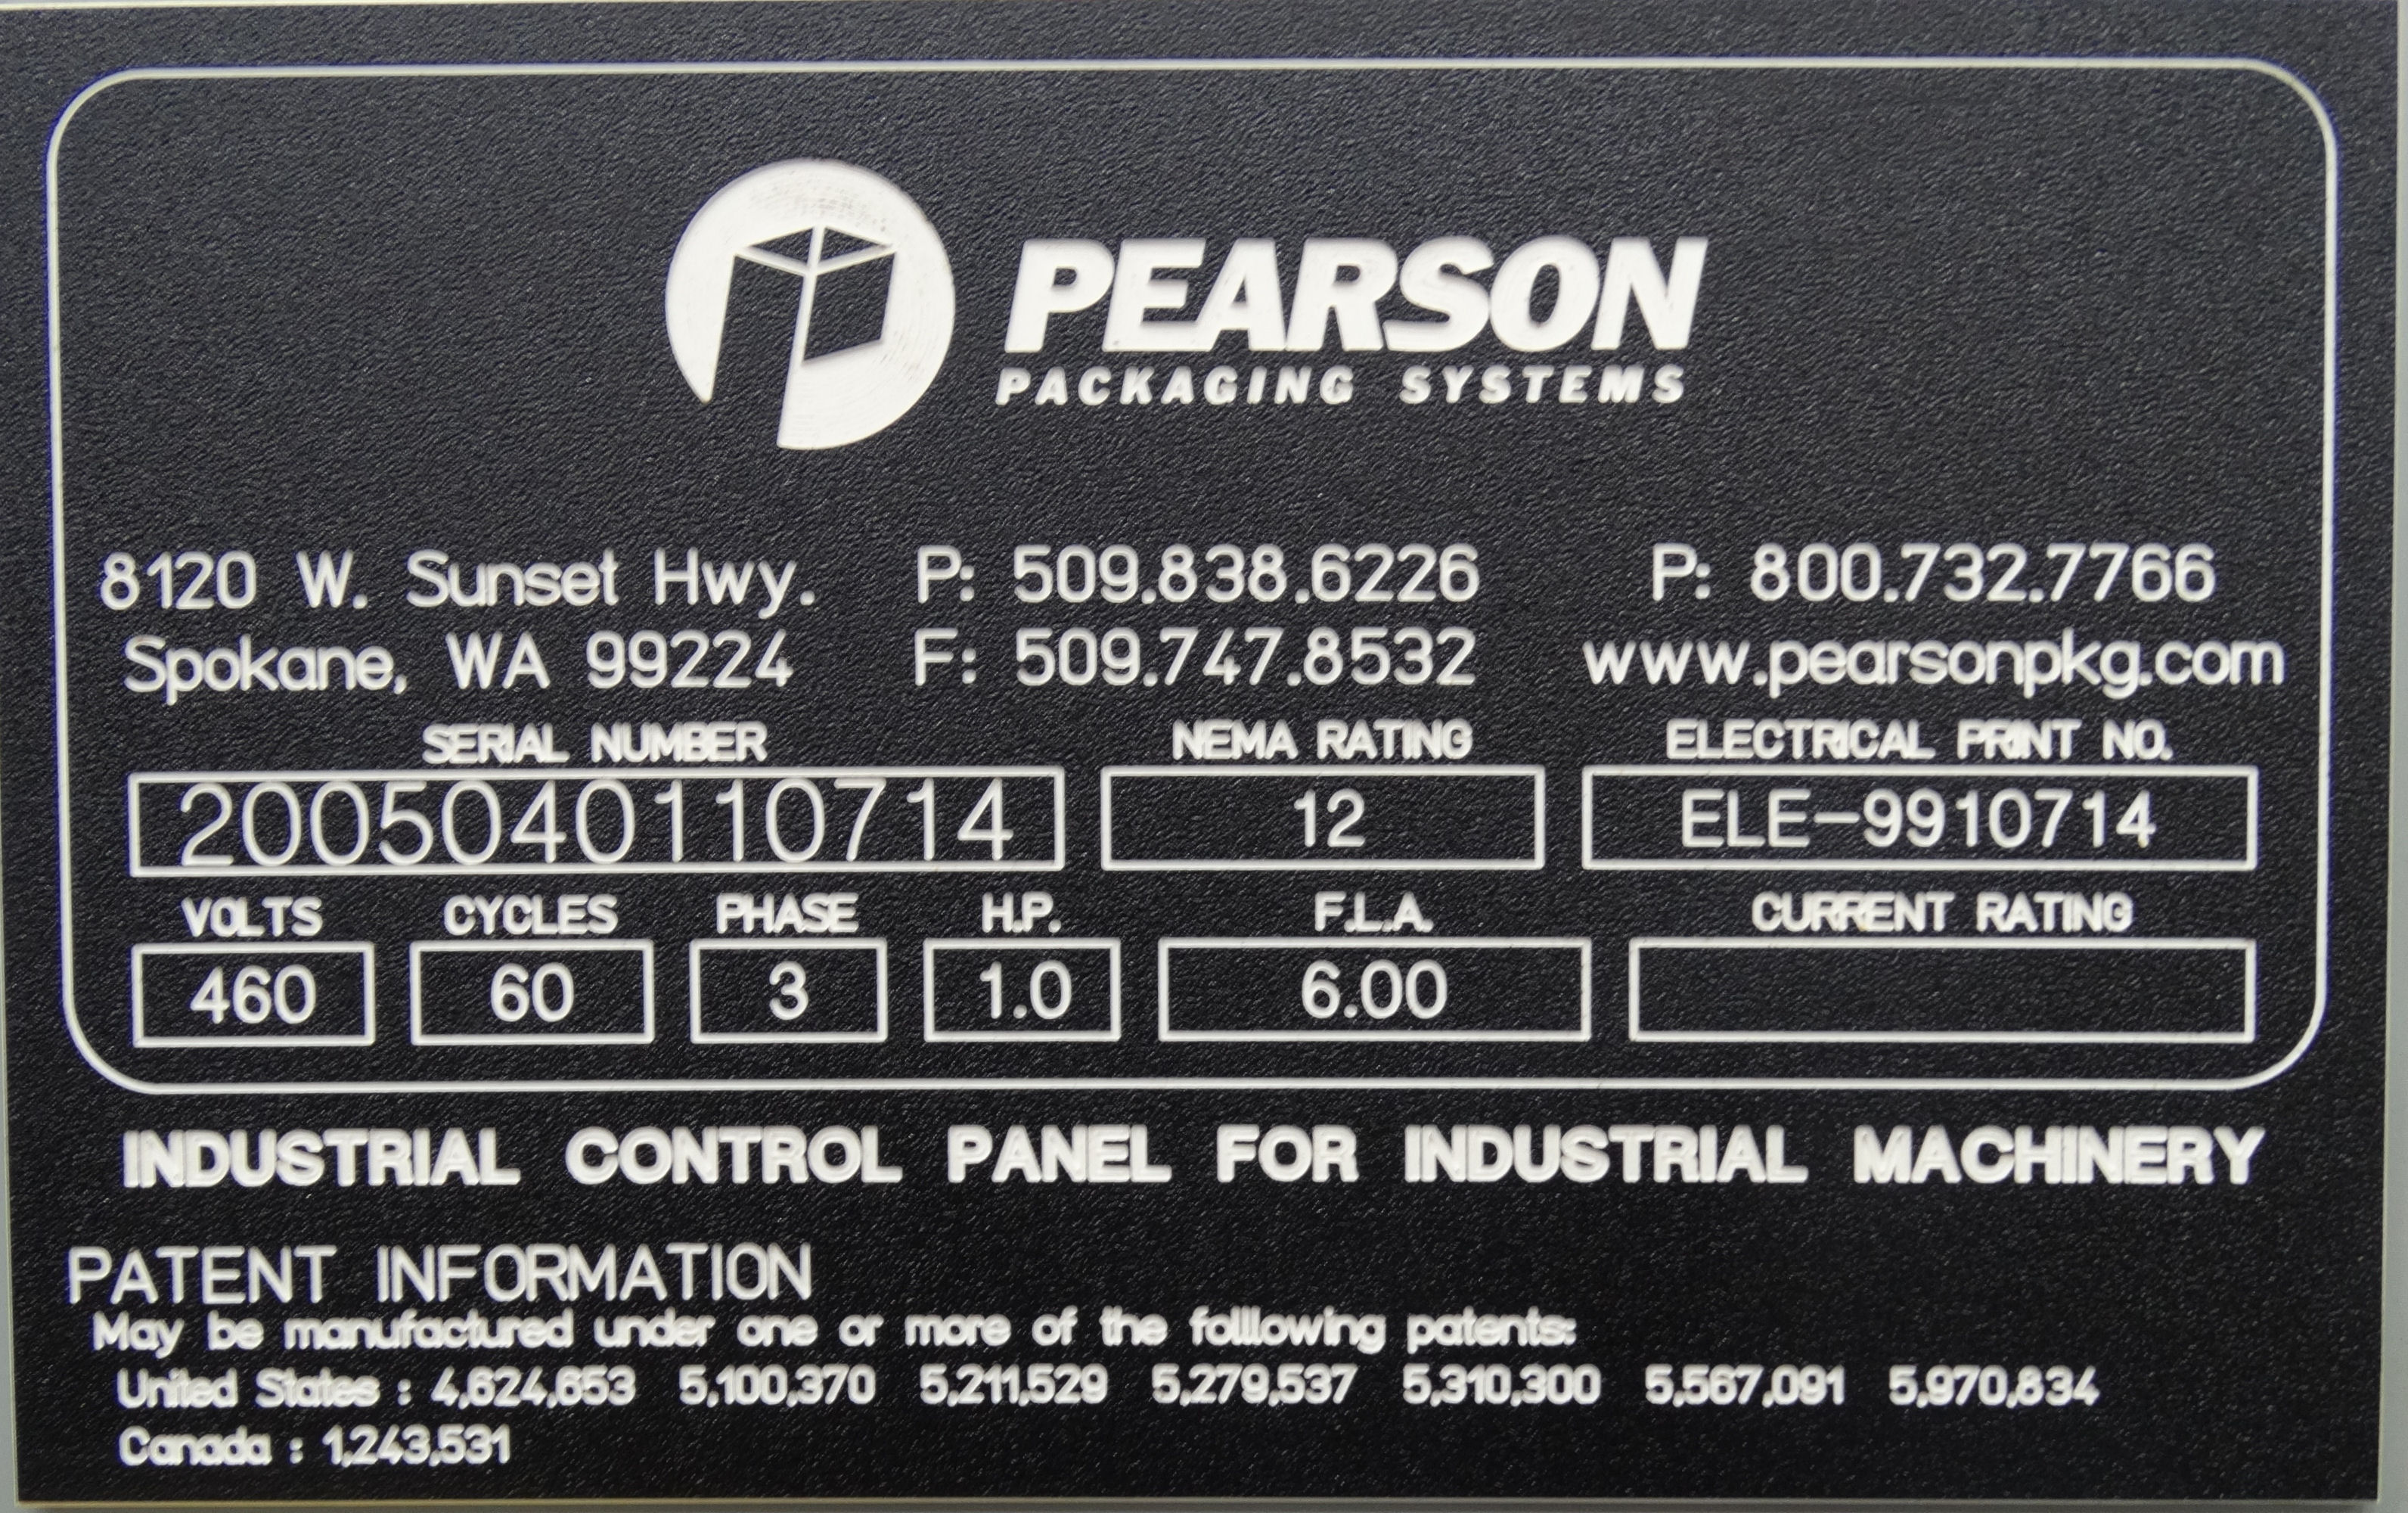 Pearson N401-IT Top Case Sealer B4395 - Image 12 of 12